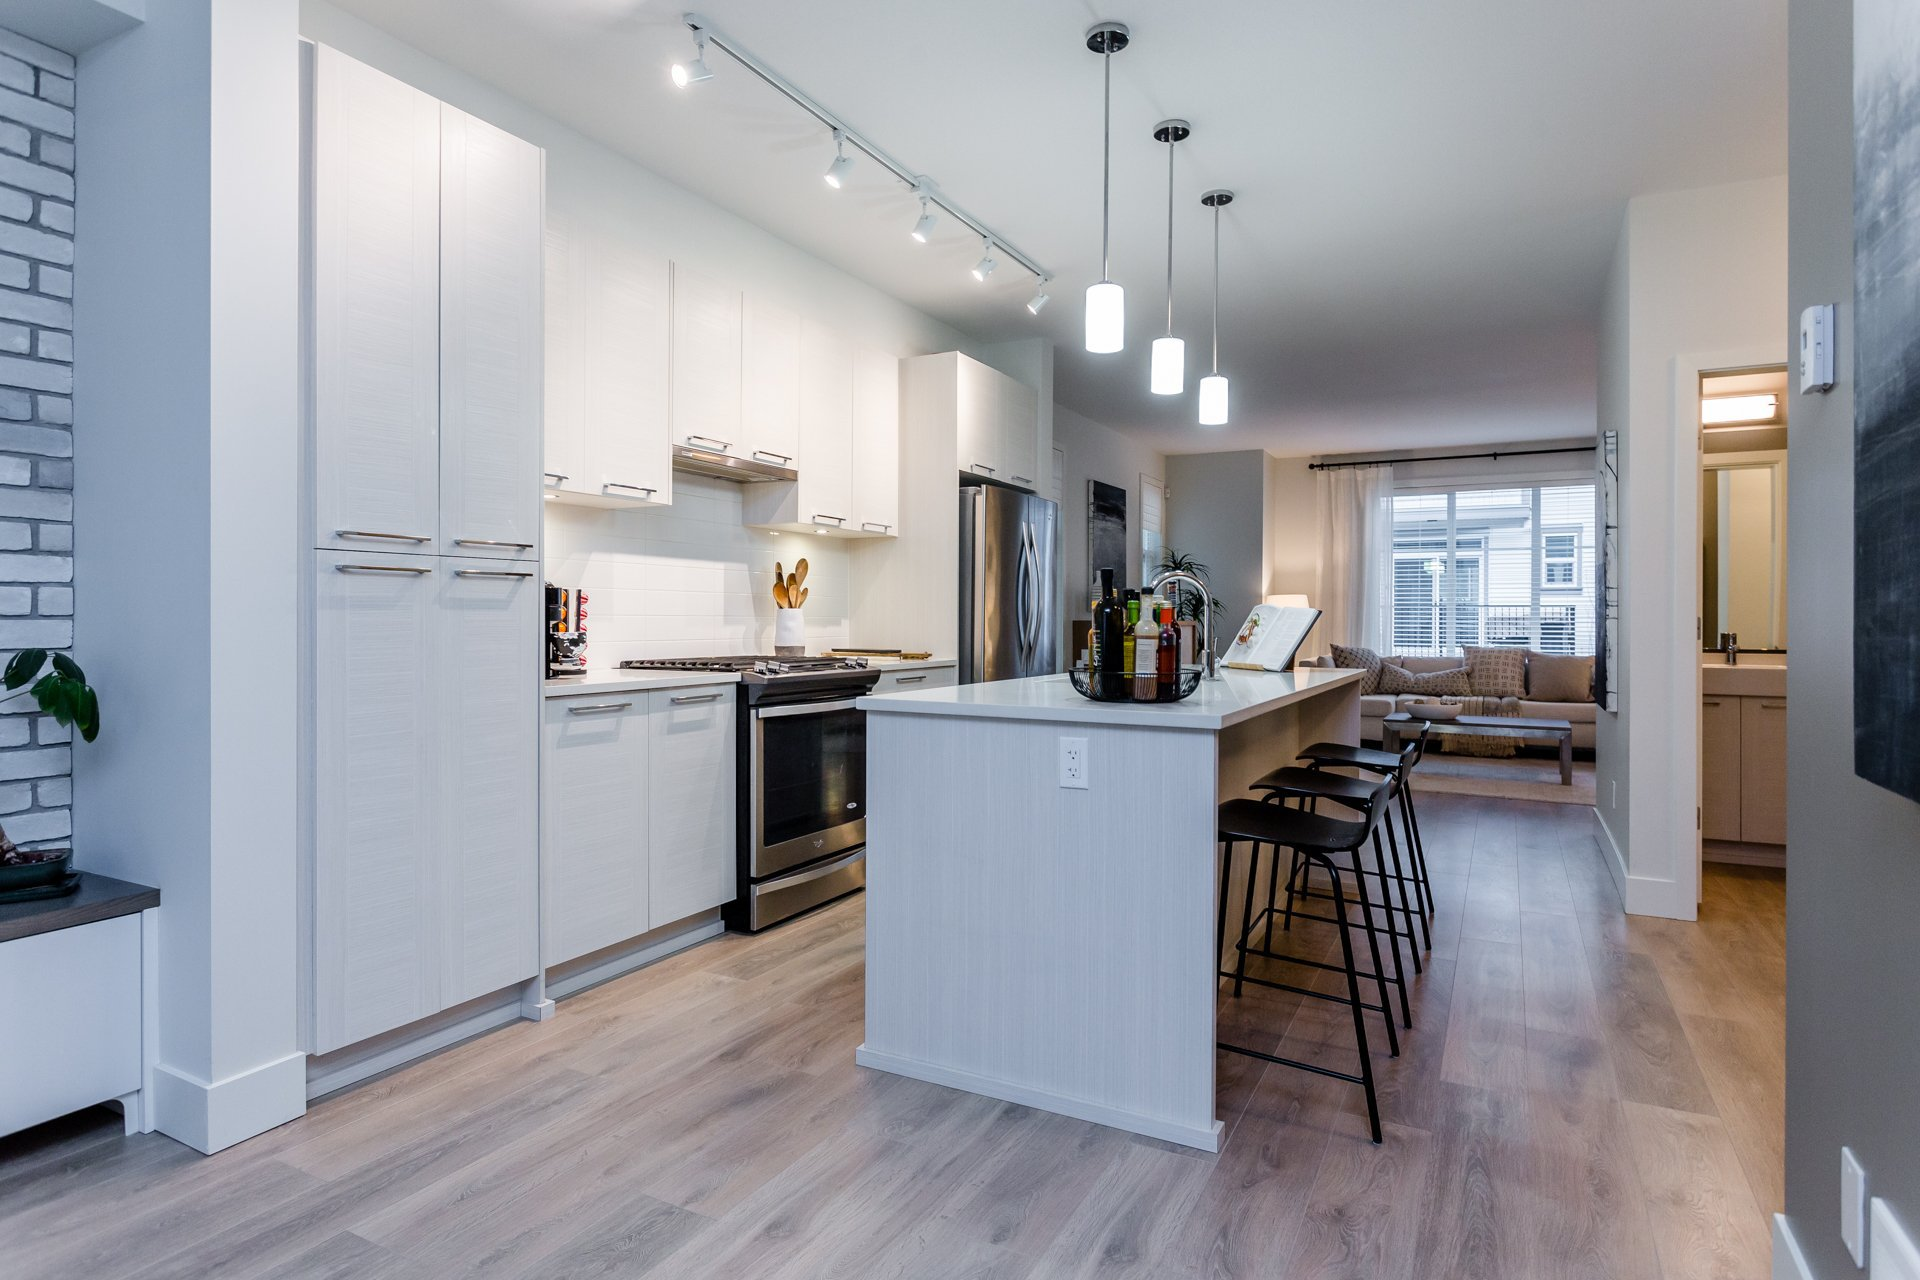 """Photo 10: Photos: 8 8217 204B Street in Langley: Willoughby Heights Townhouse for sale in """"EVERLY GREEN"""" : MLS®# R2236678"""